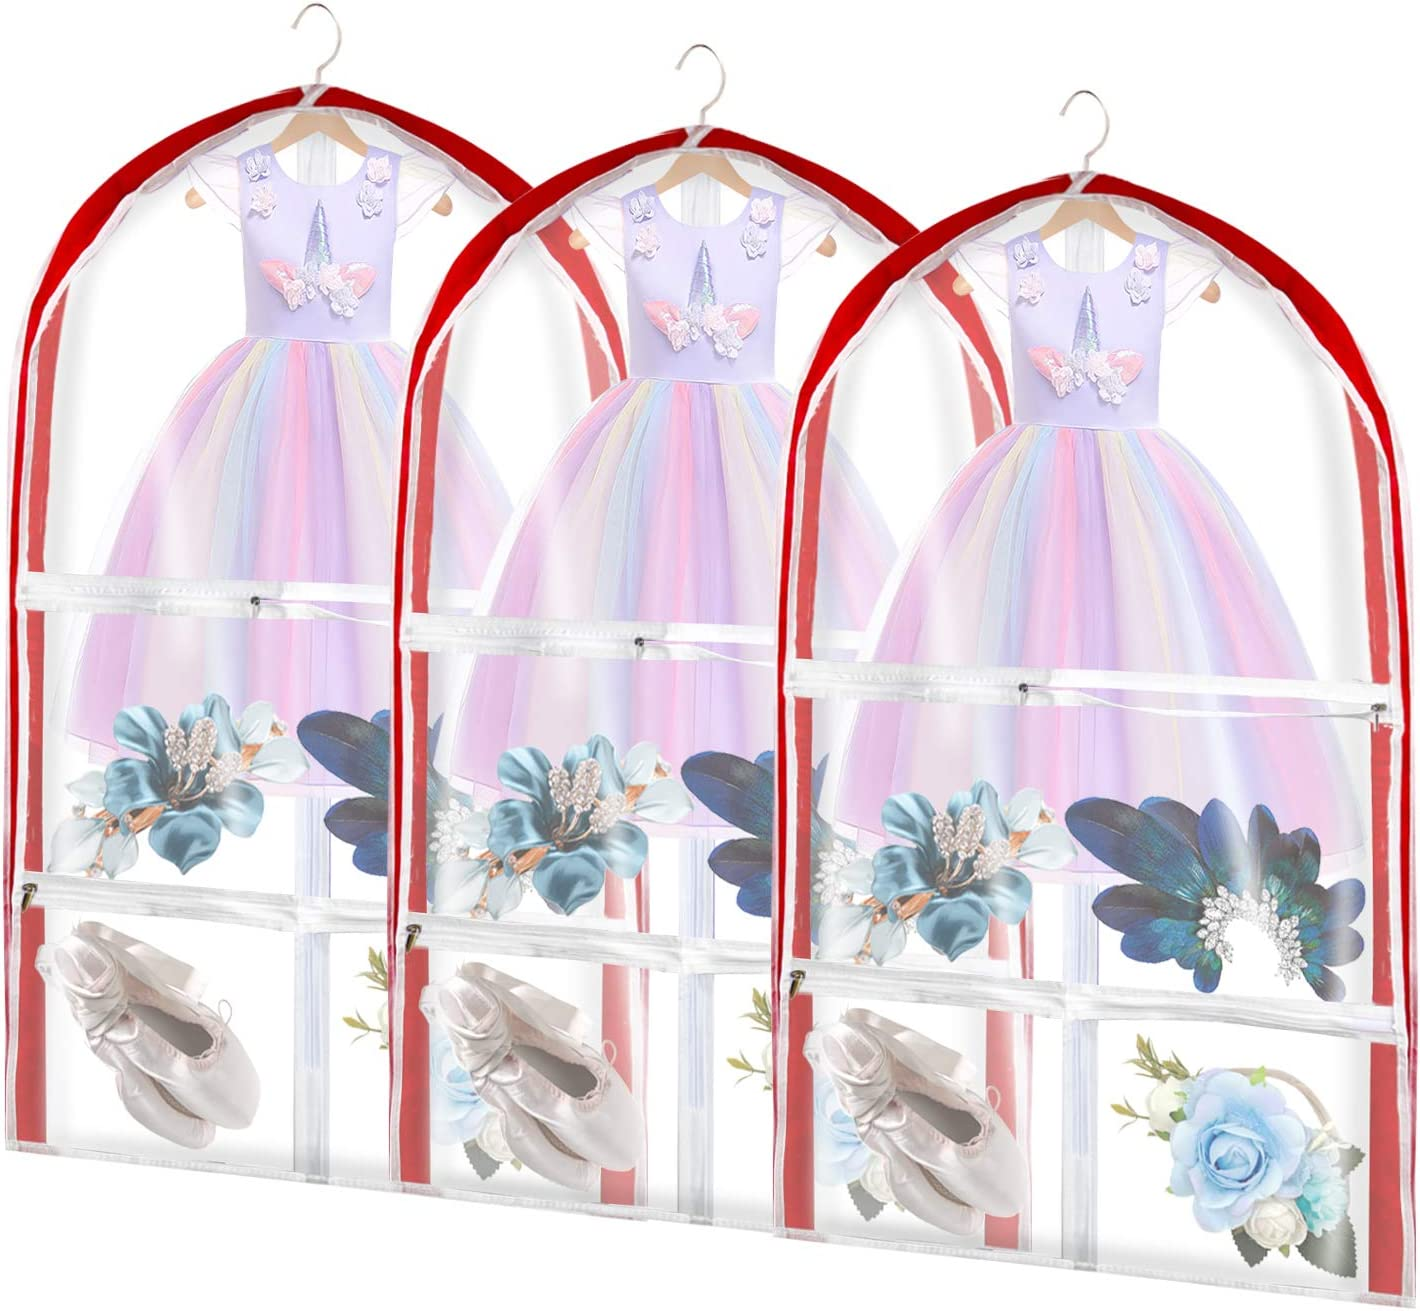 Kids Garment Bags Not Come with 35 Costume Opening large release sale inch Hanger Ranking TOP3 Ba Dance